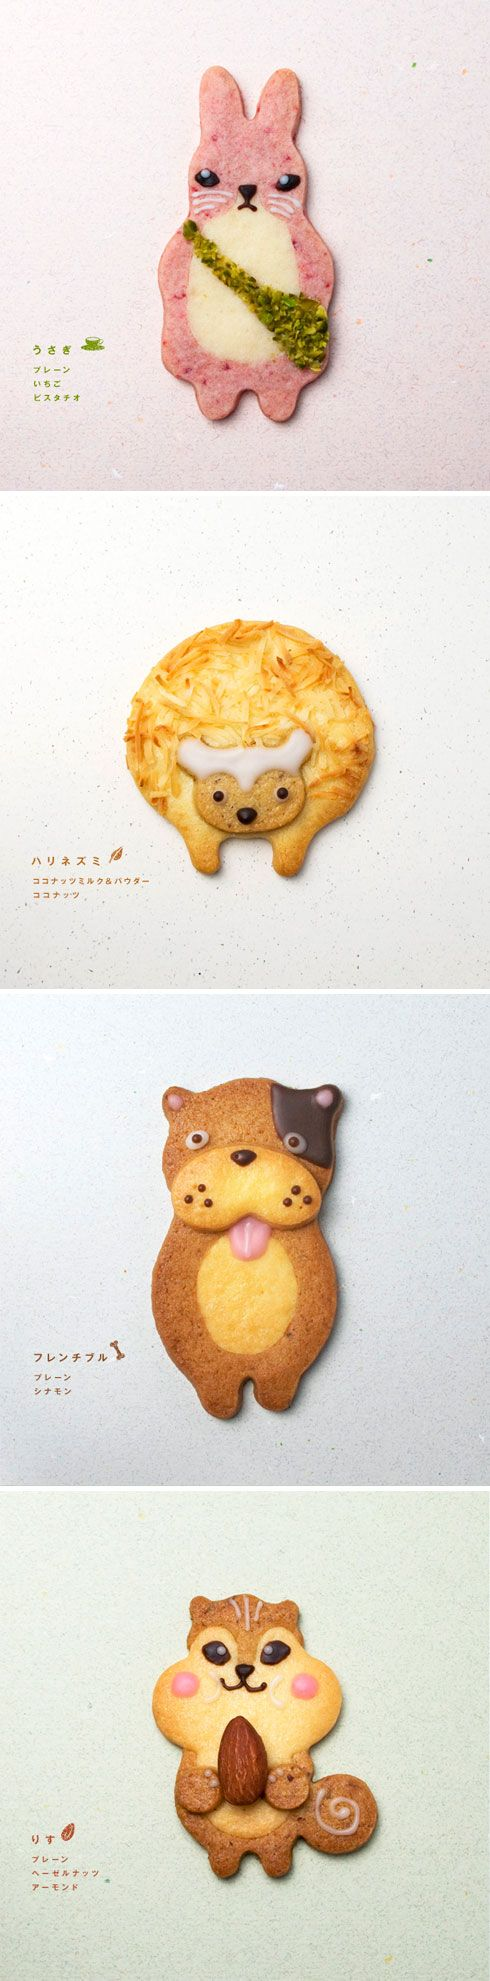 cookies by Henteco